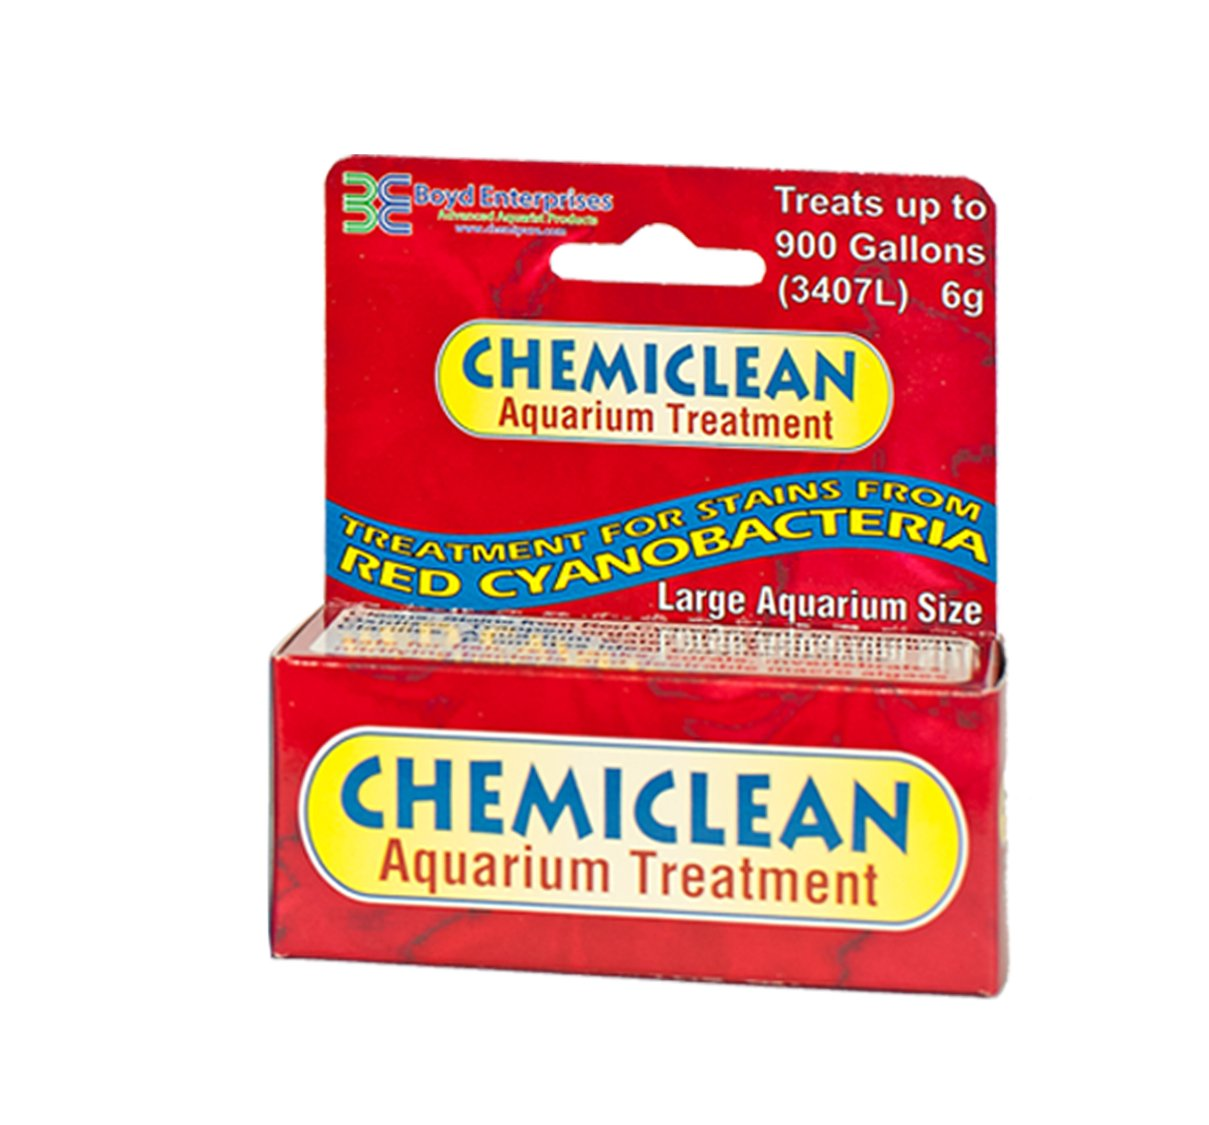 Fish Aquarium Rates In Delhi - Boyd enterprises abe76714 chemiclean for aquarium 6gm